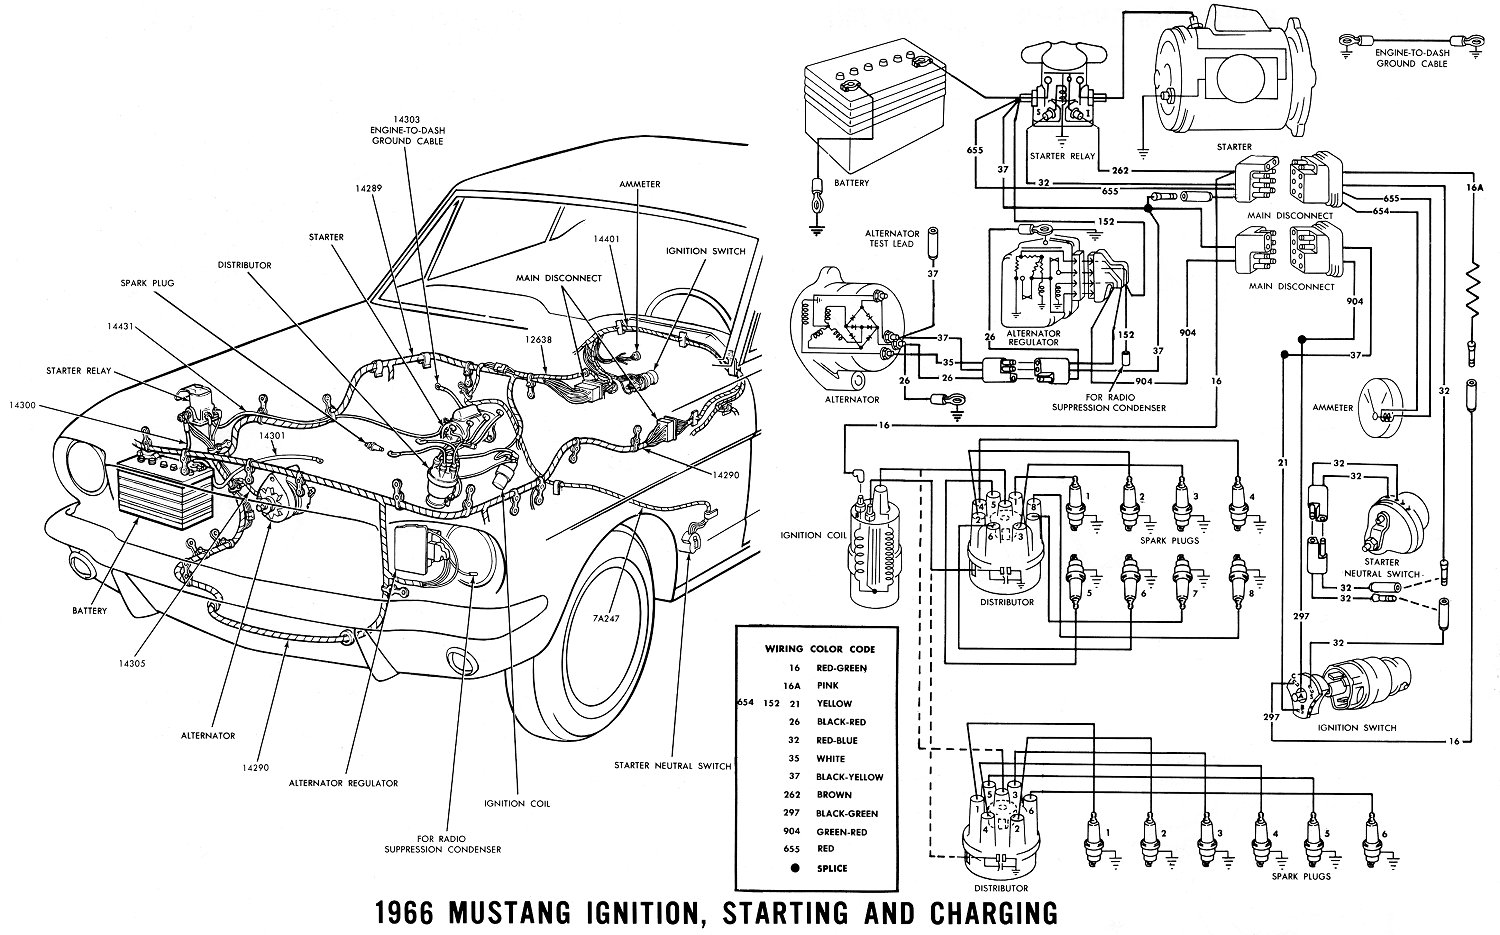 2001 Mustang Wiring Diagram from 4.bp.blogspot.com